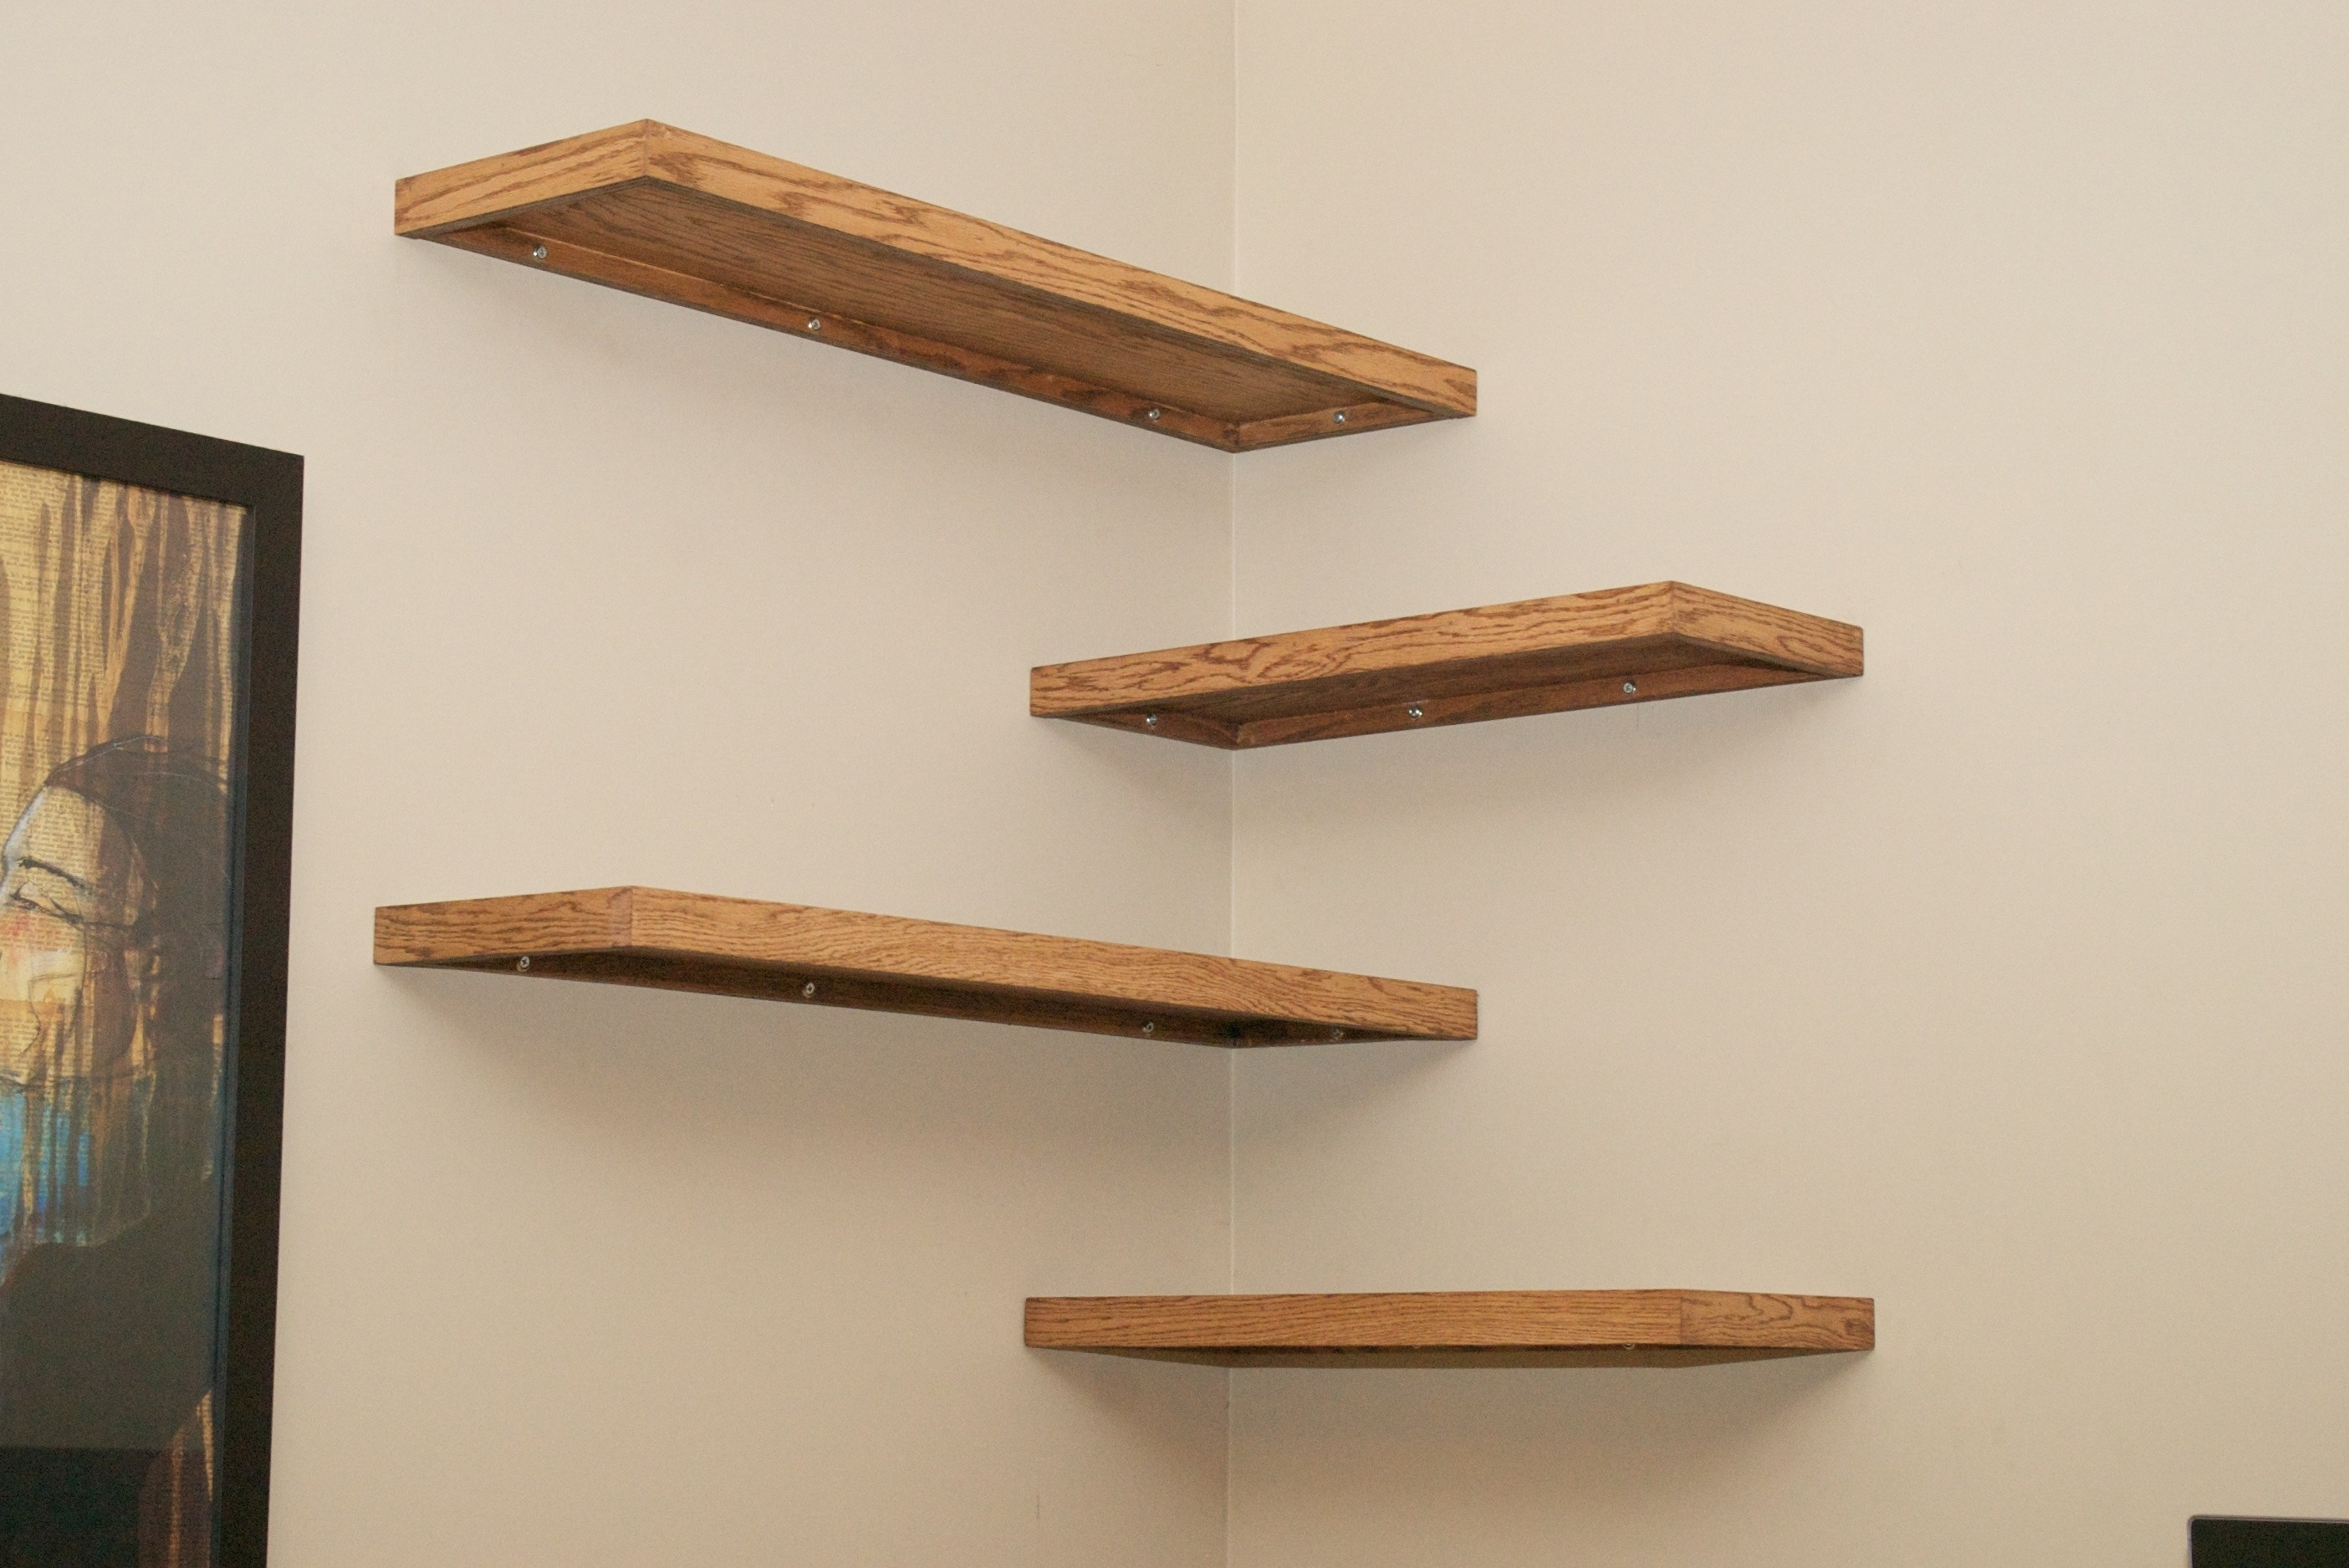 Famous Wall Shelves Design: Cherry Wood Wall Shelves For Sale Dark Cherry Throughout Wooden Wall Shelves (View 6 of 15)